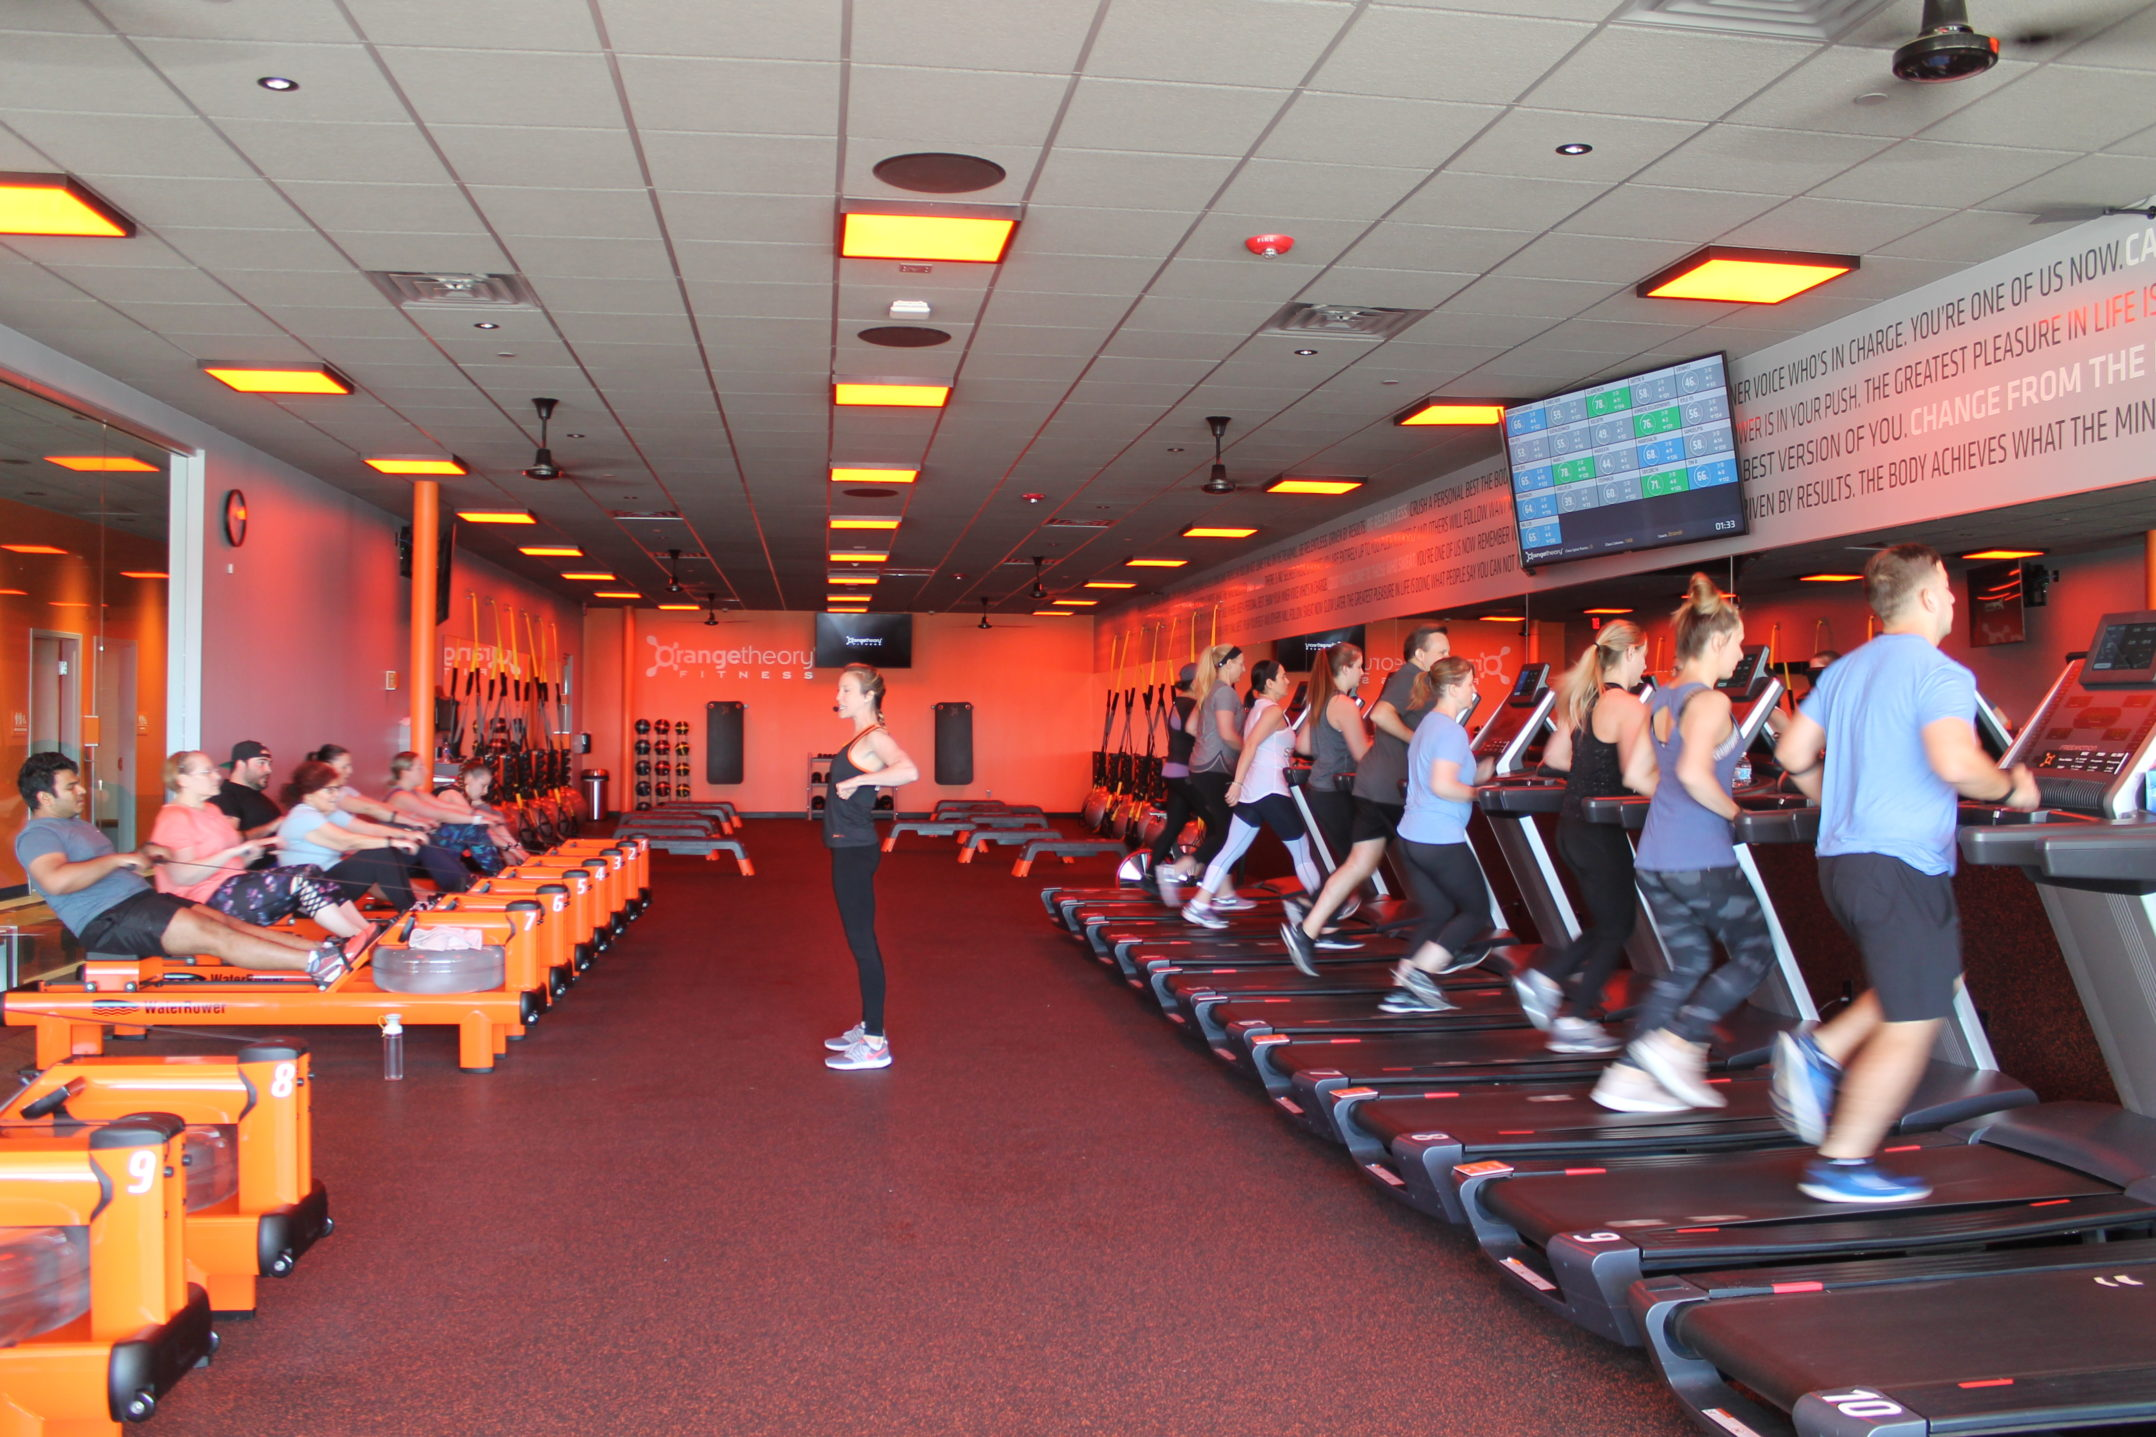 Orangetheory fitness opens in allentown the brown and white